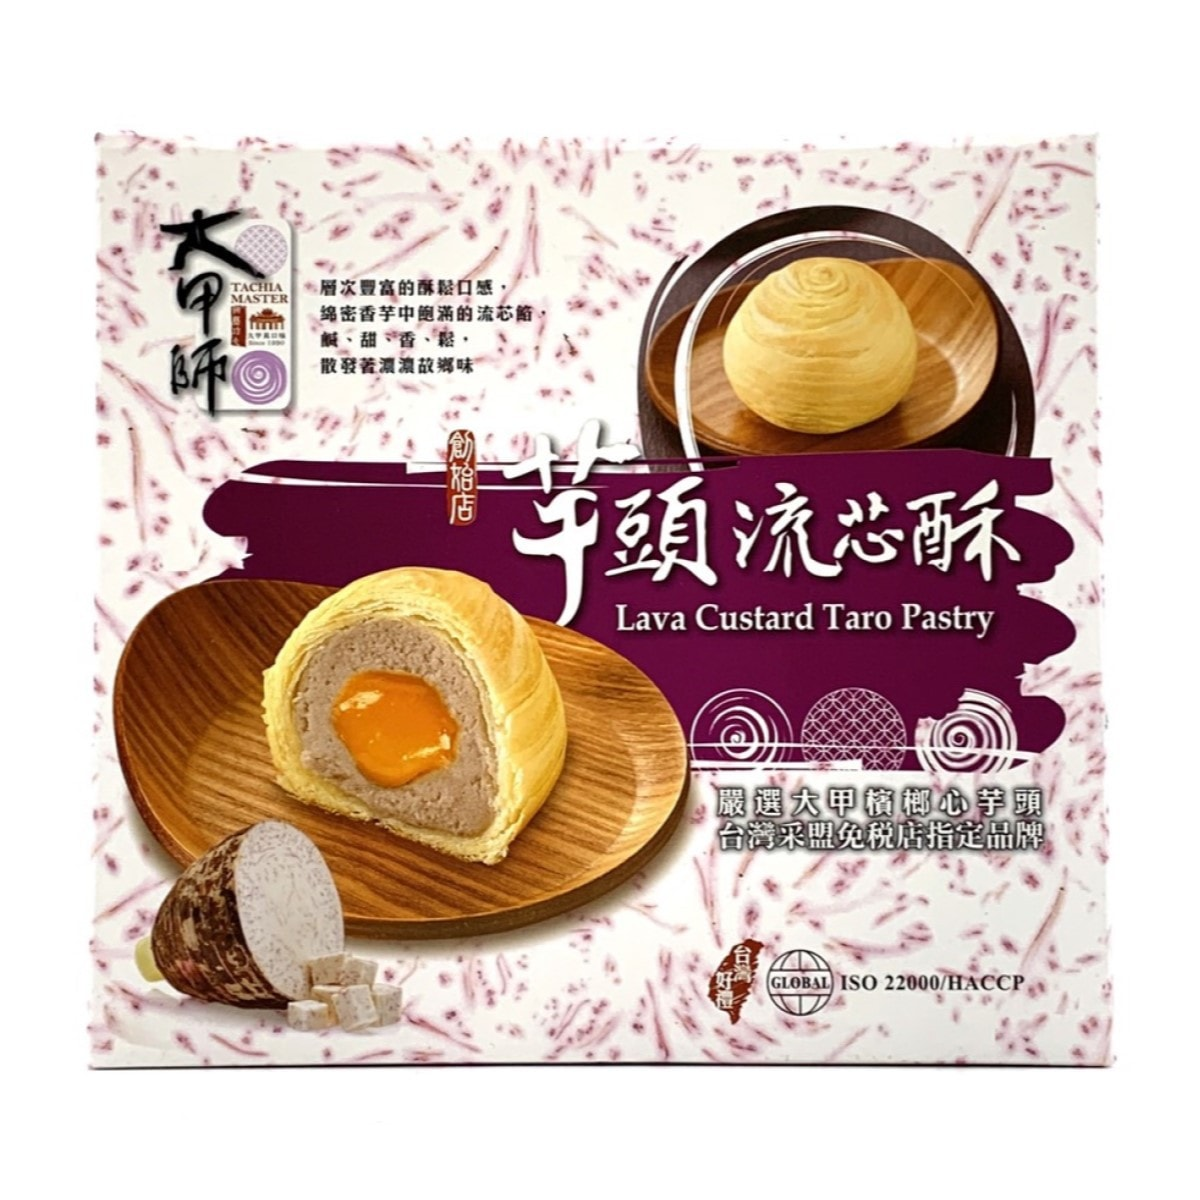 Yamibuy.com:Customer reviews:TACHIA MASTER Lava Custard Taro Pastry 300g/6pcs